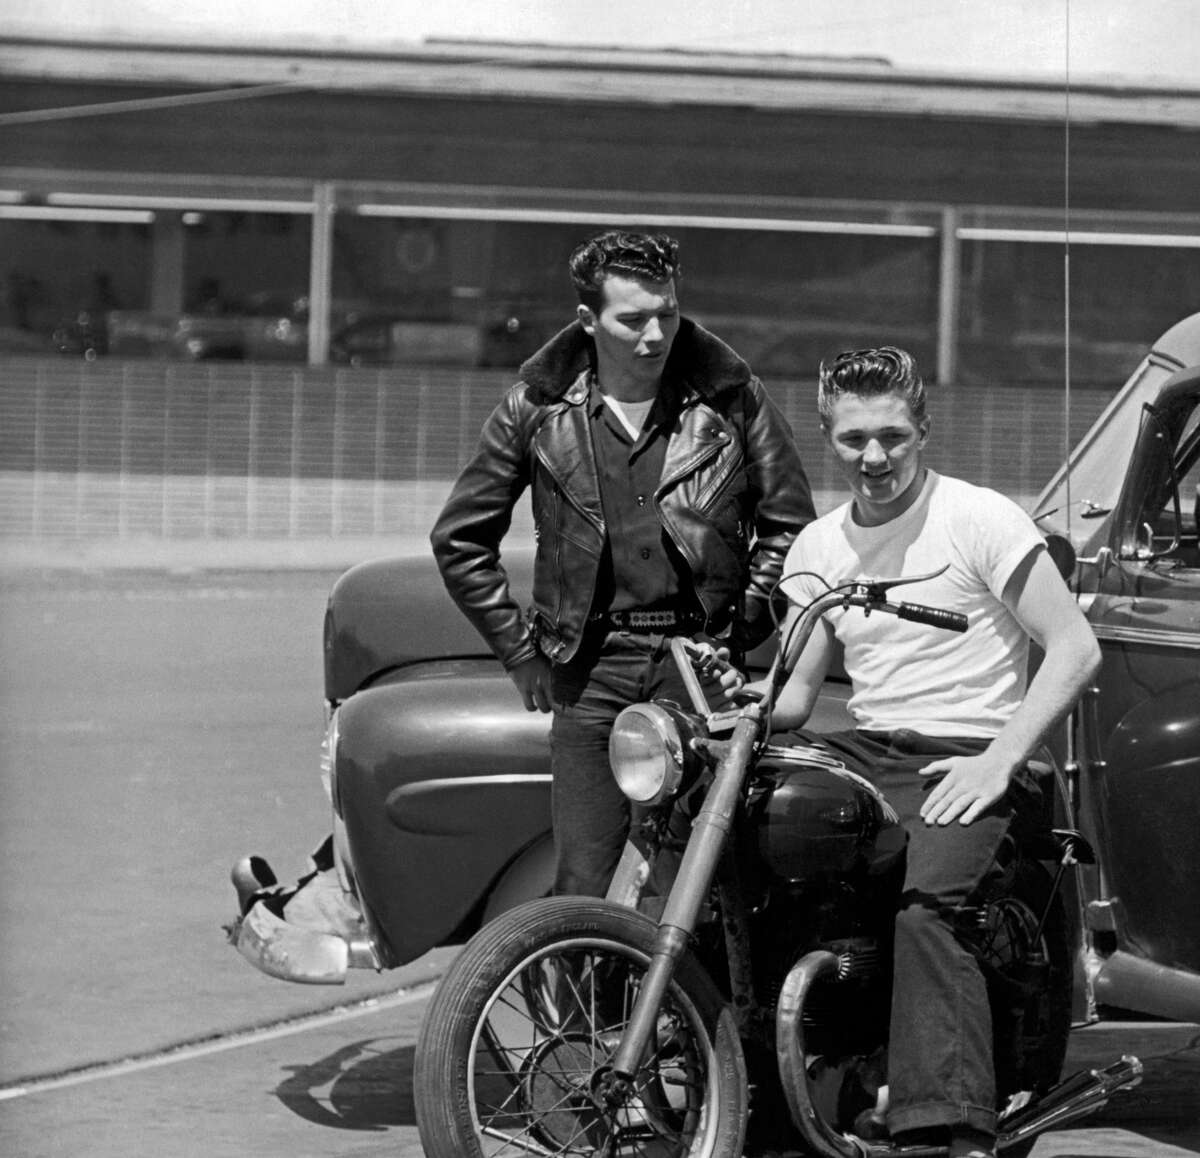 Grease is the word! Two teens hang out on their motorcycle and car during the 1950s.